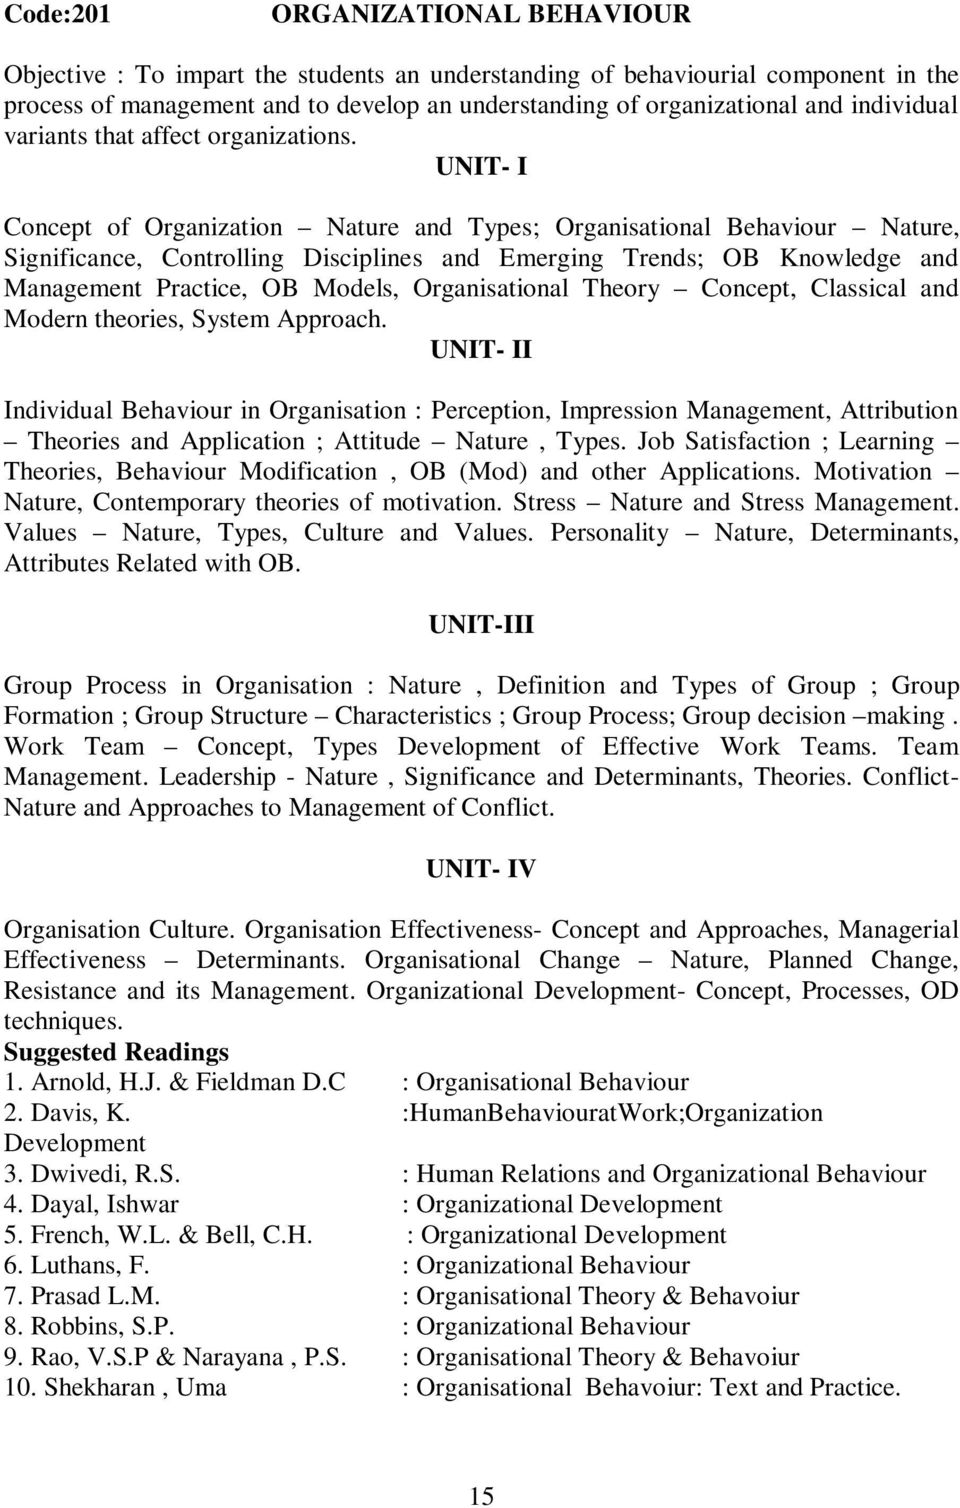 UNIT- I Concept of Organization Nature and Types; Organisational Behaviour Nature, Significance, Controlling Disciplines and Emerging Trends; OB Knowledge and Management Practice, OB Models,